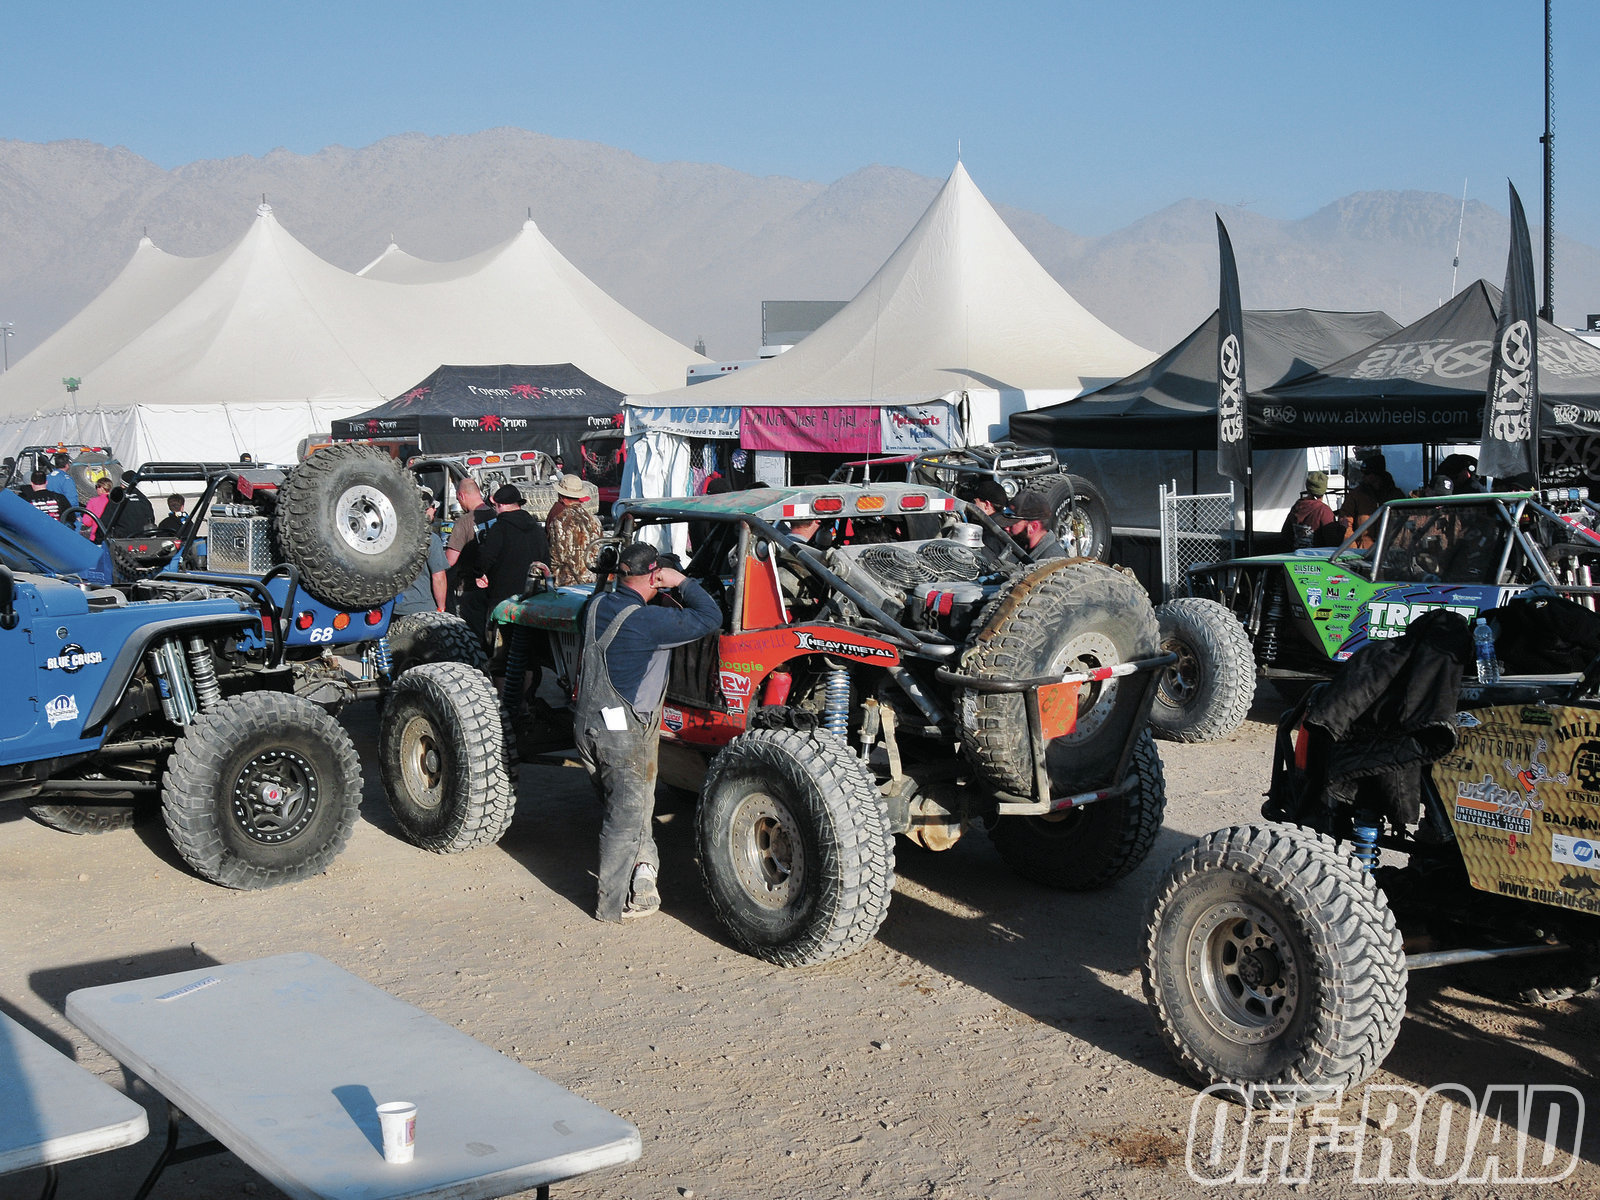 1206or 08+king of the hammers 2012+unlimited class race trucks in line